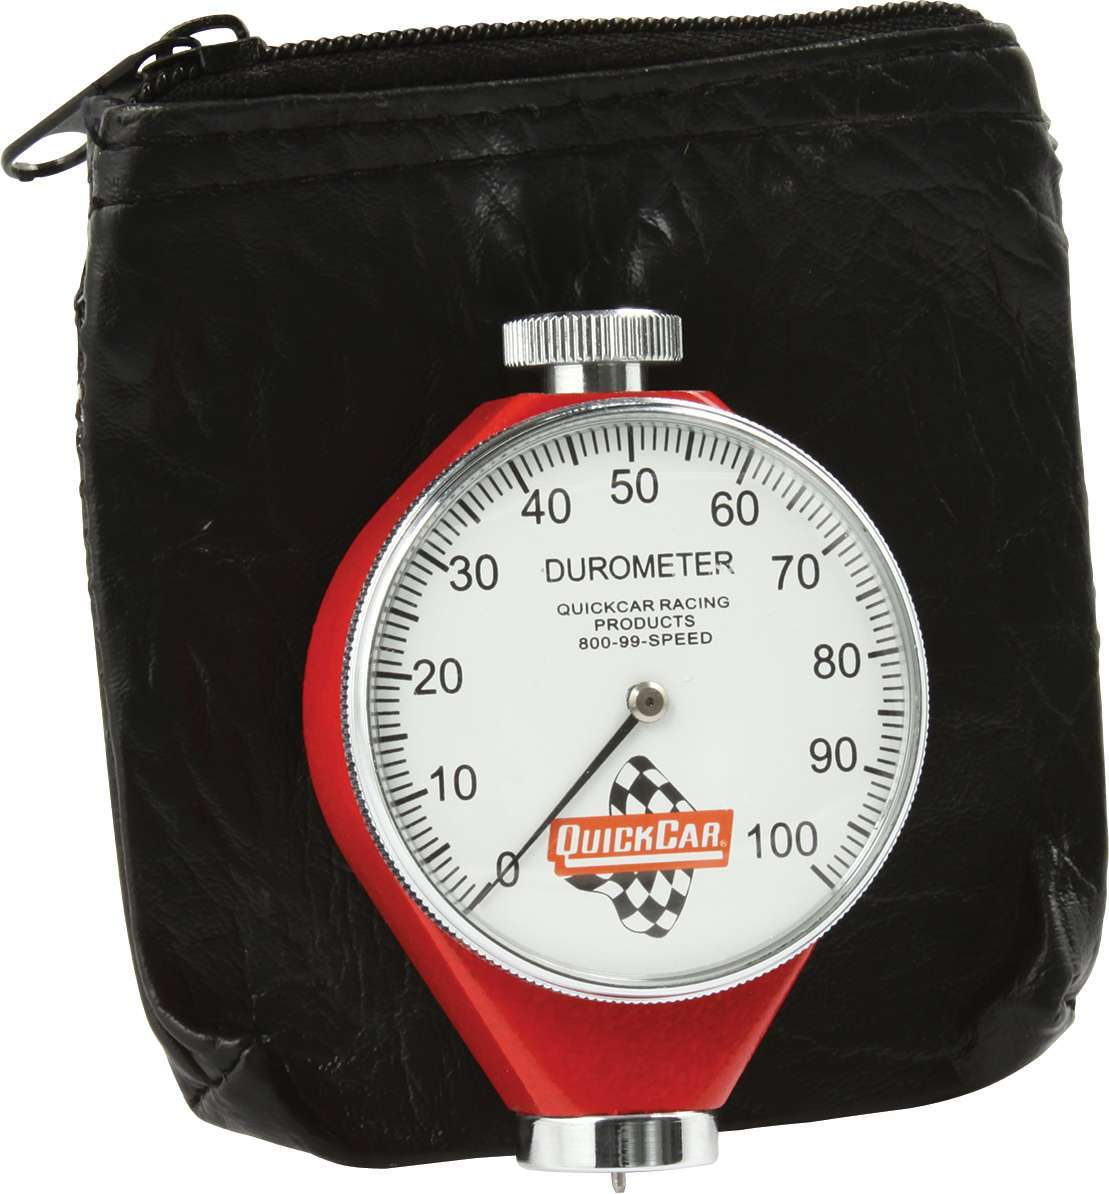 Quickcar Racing Products Tire Durometer Deluxe